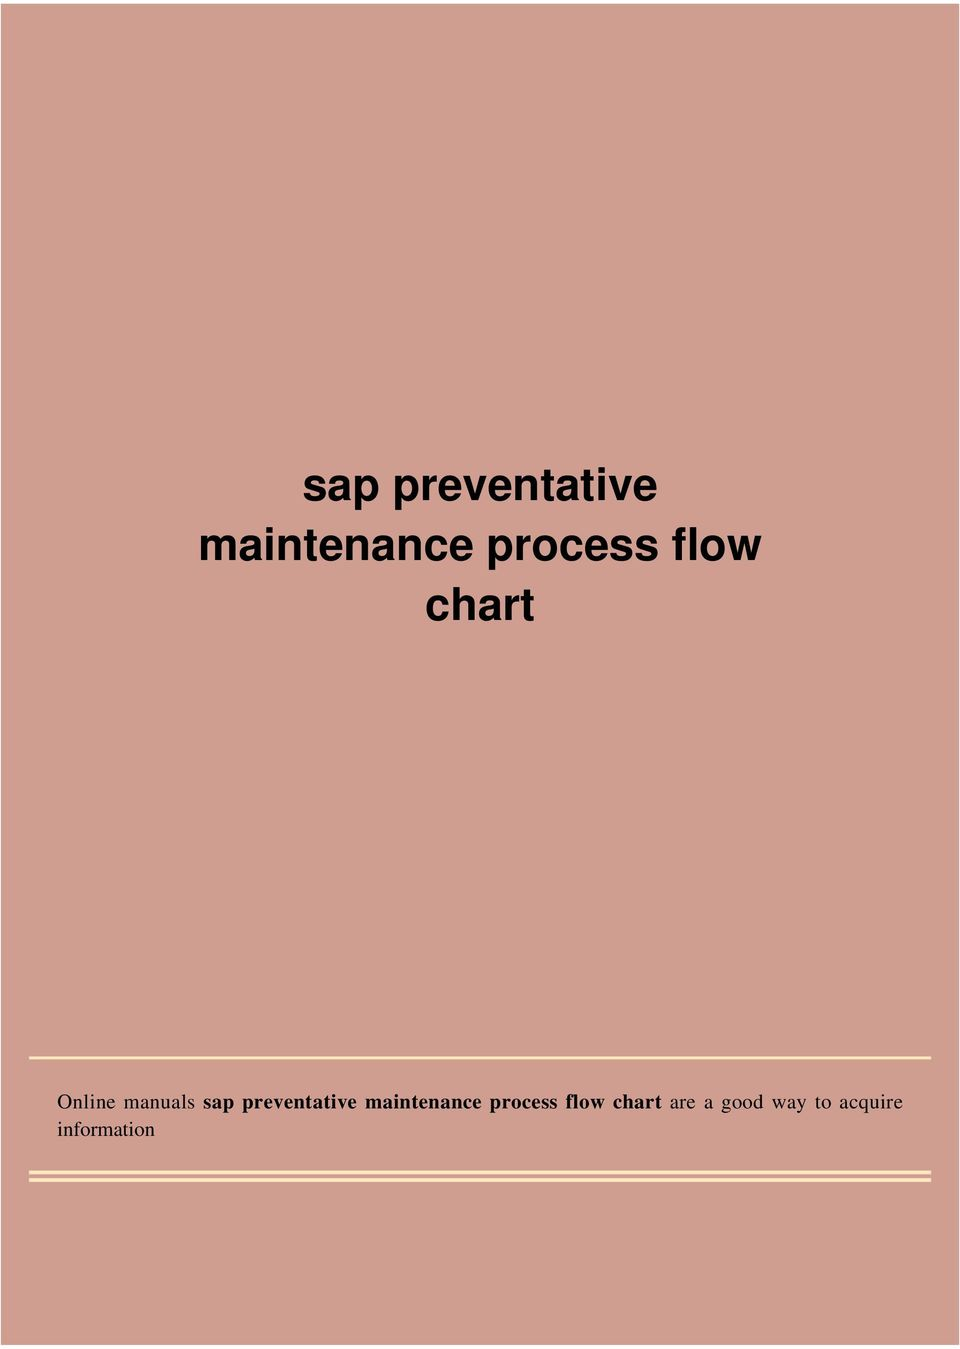 chart Online manuals are